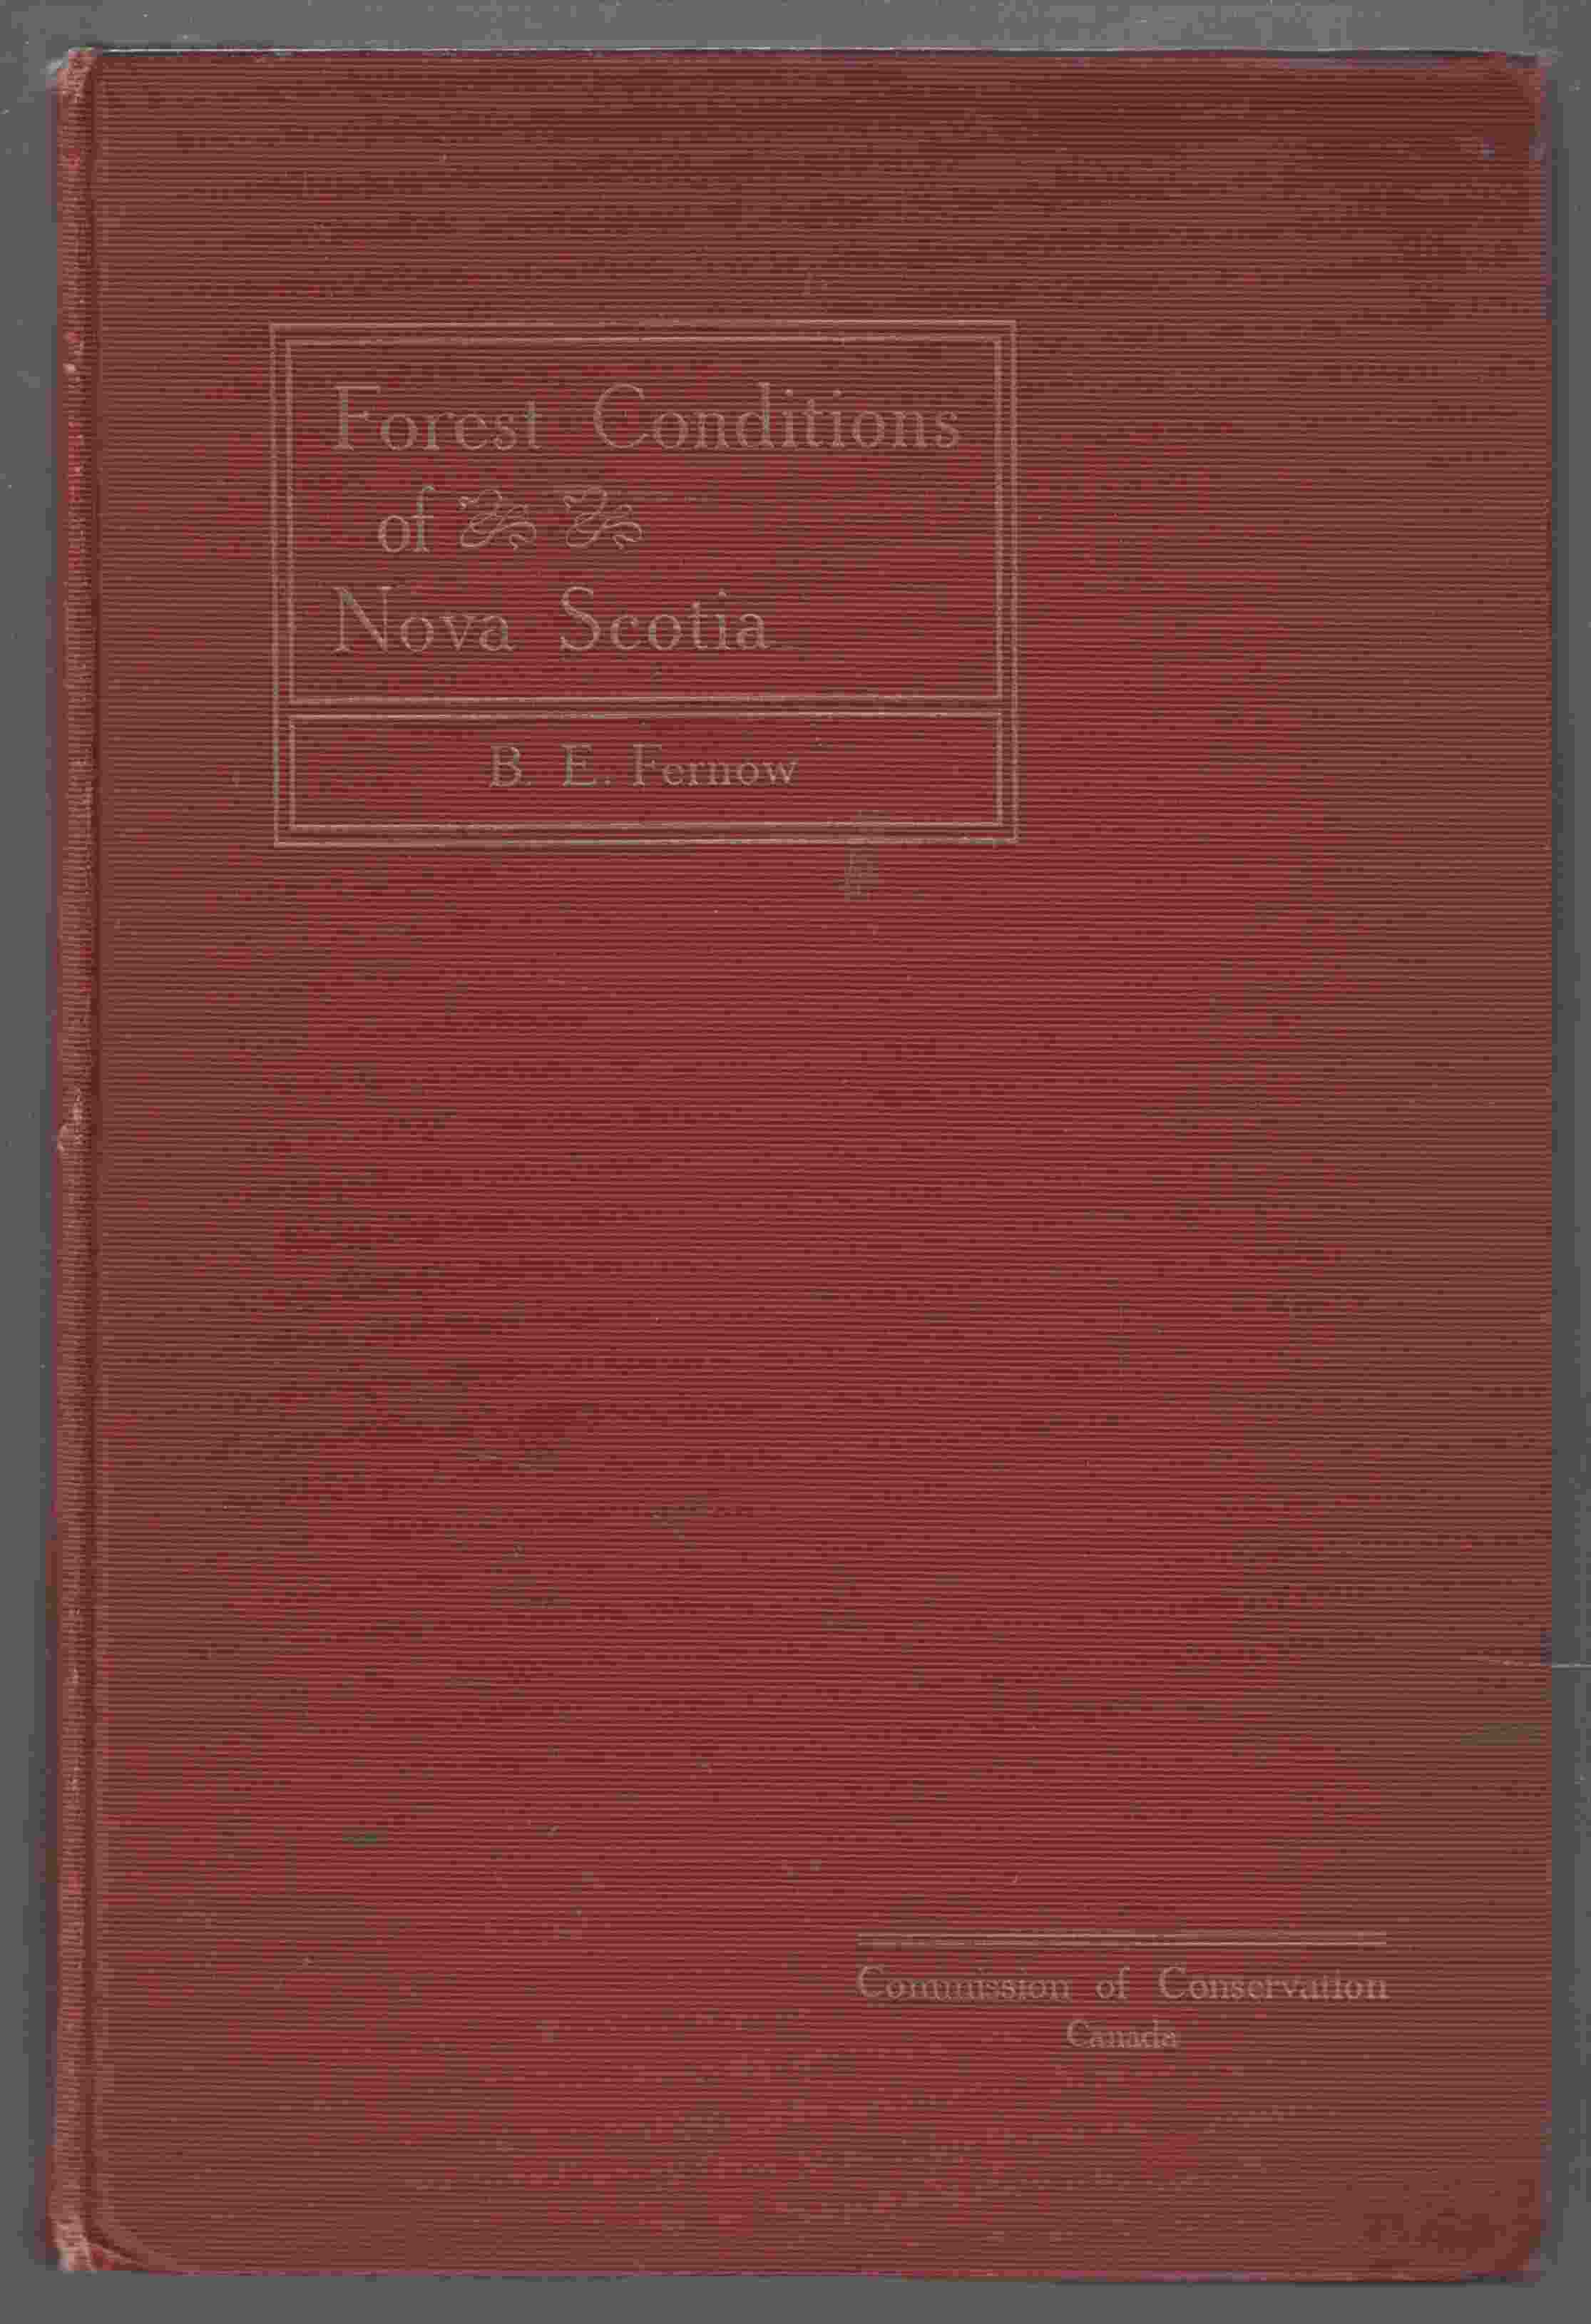 Image for Forest Conditions of Nova Scotia